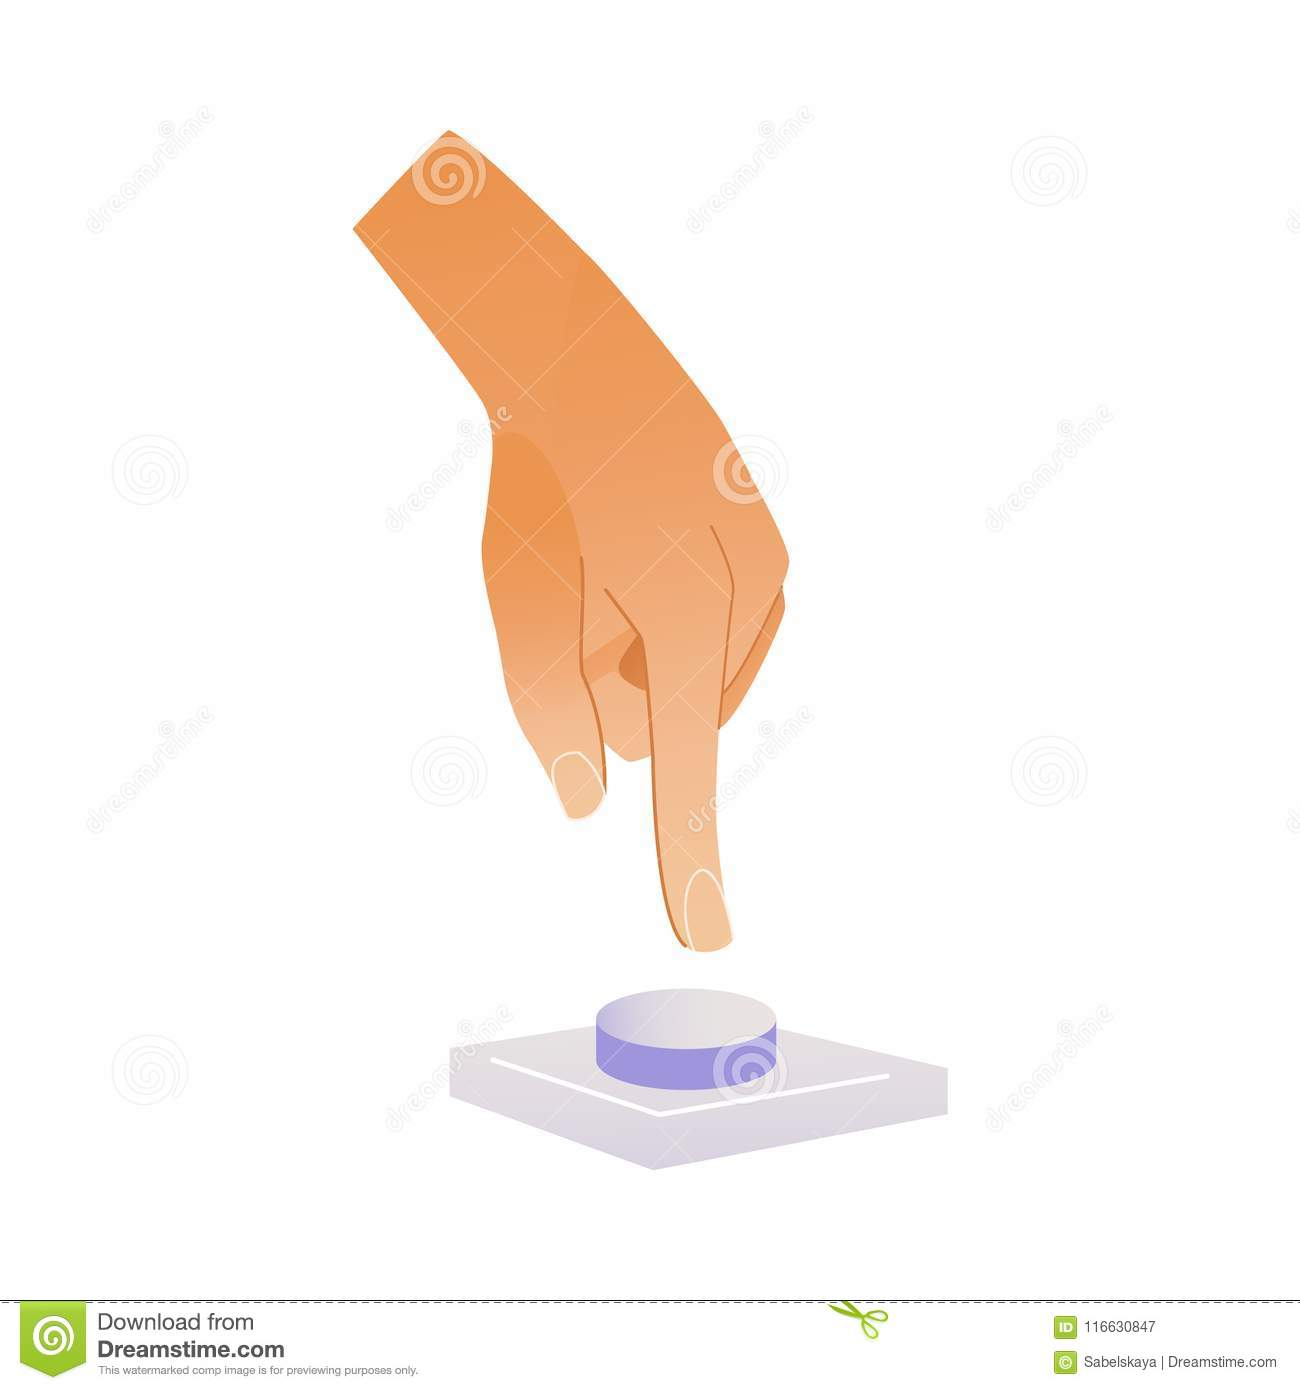 Human hand pressing button with index finger isolated on white background.